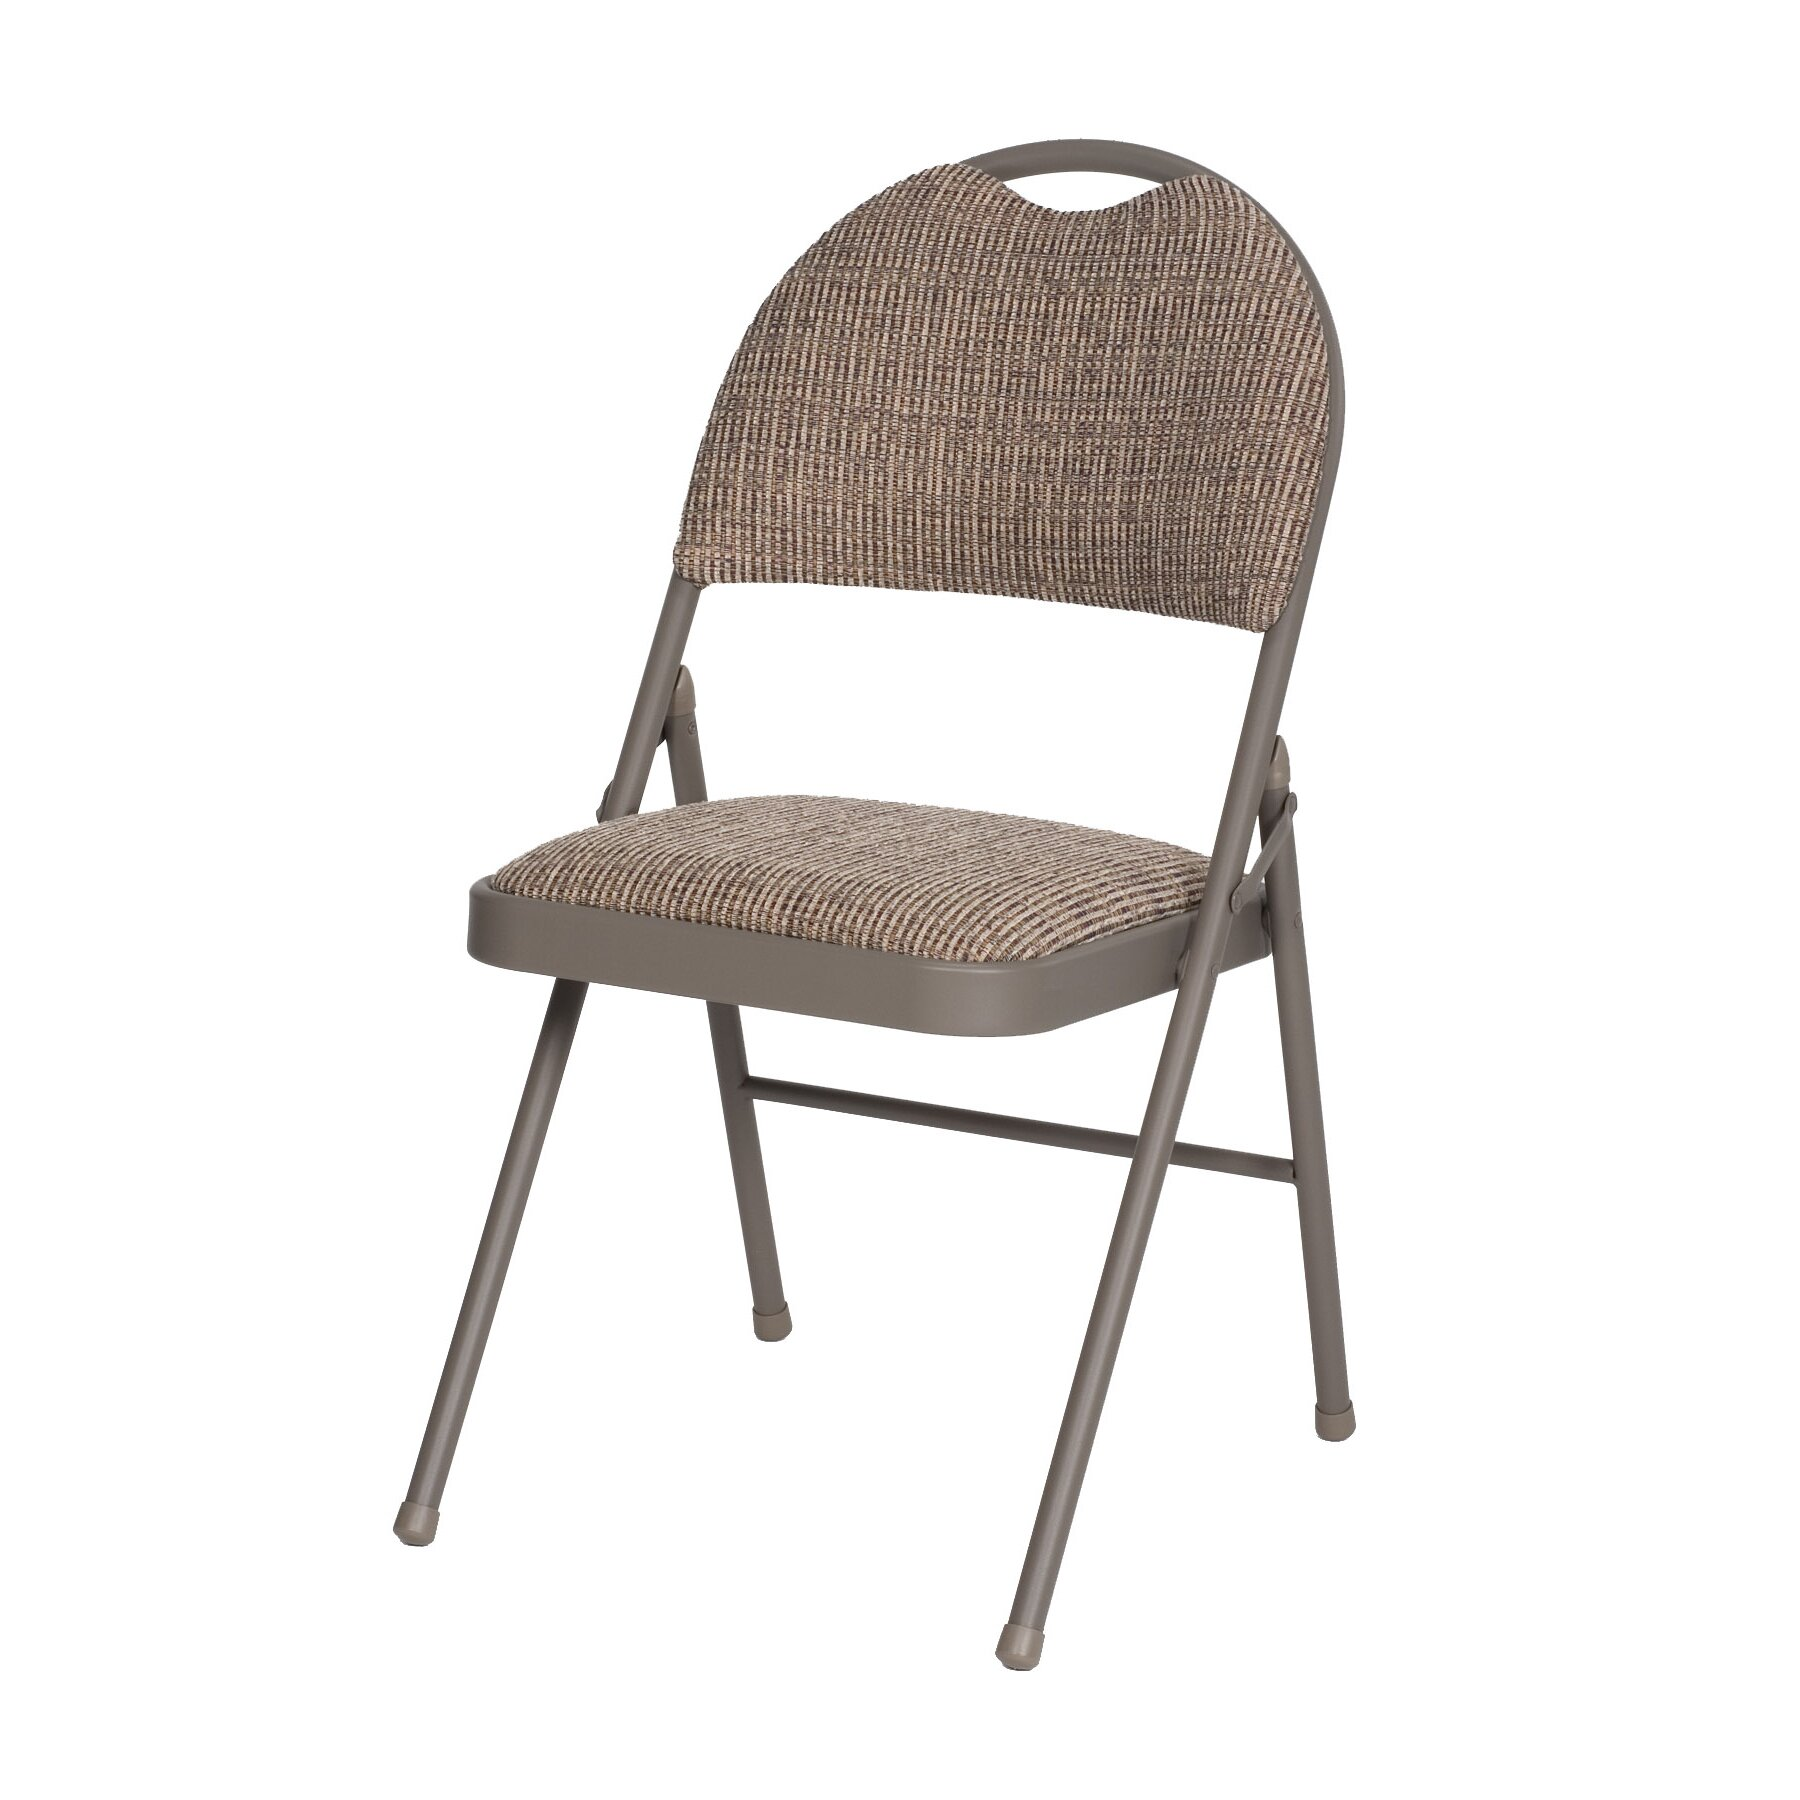 Meco Double Padded High Back Chair Reviews – Folding Padded Lawn Chairs